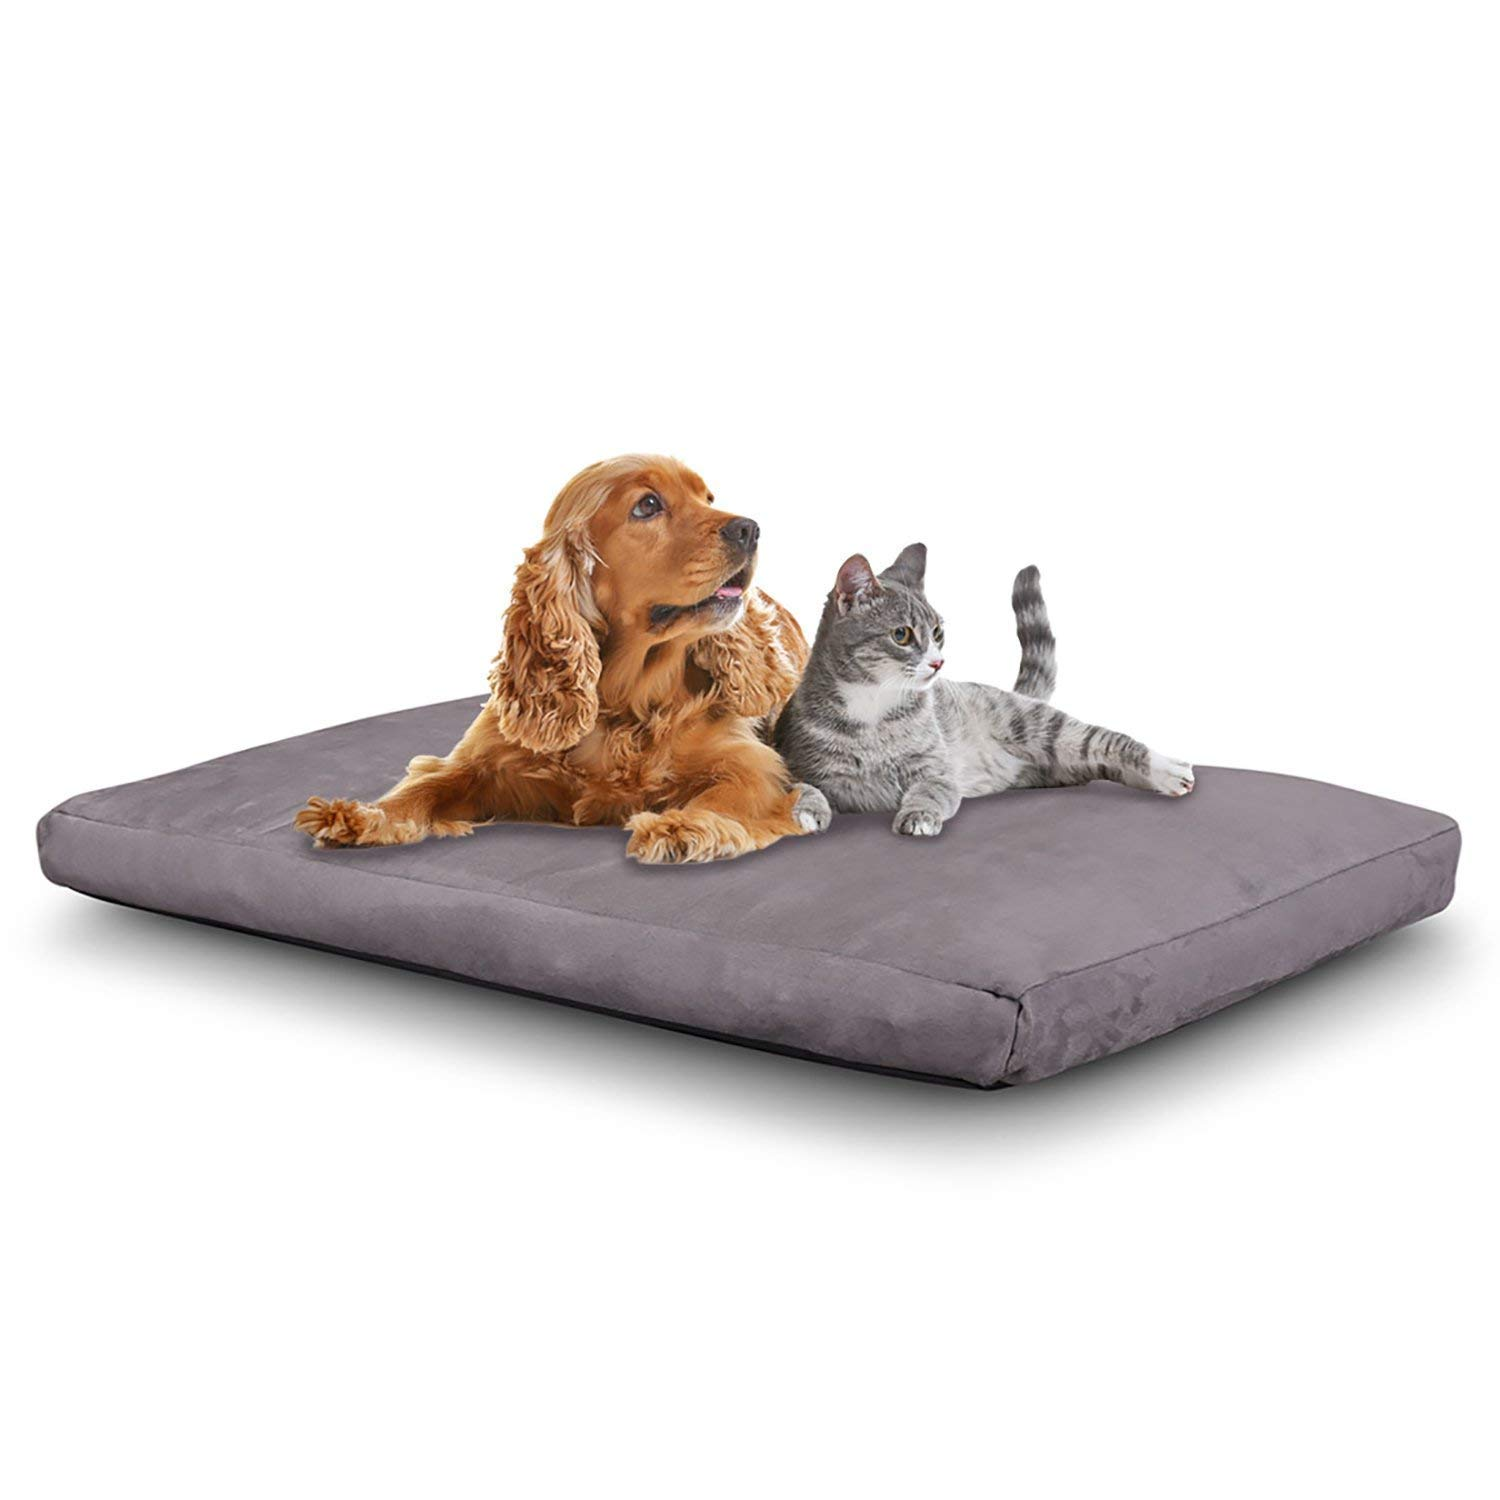 Comfort & Relax Shredded Memory Foam Waterproof Pet Bed for Extra Large Dogs Over 70bls by Cr Comfort & Relax